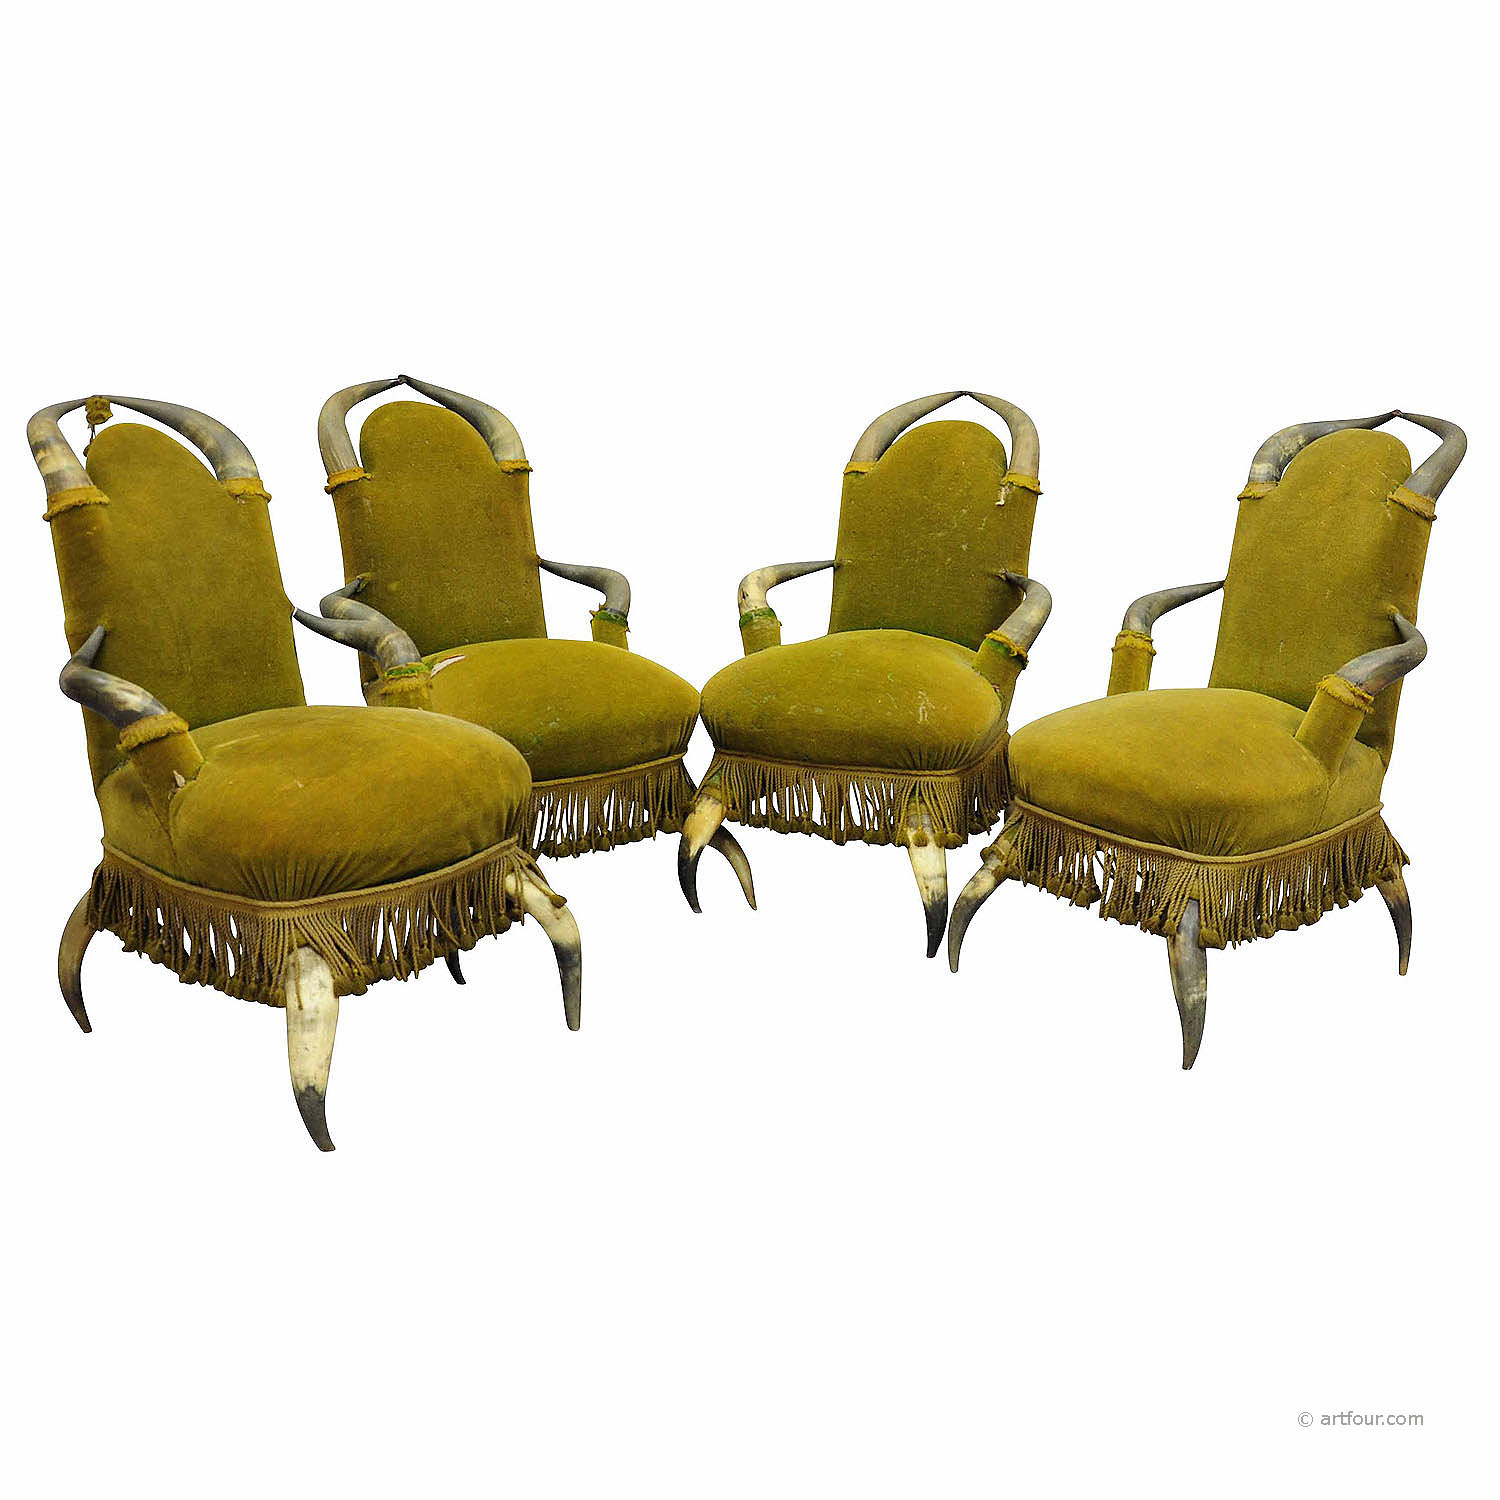 four antique bull horn chairs ca. 1870